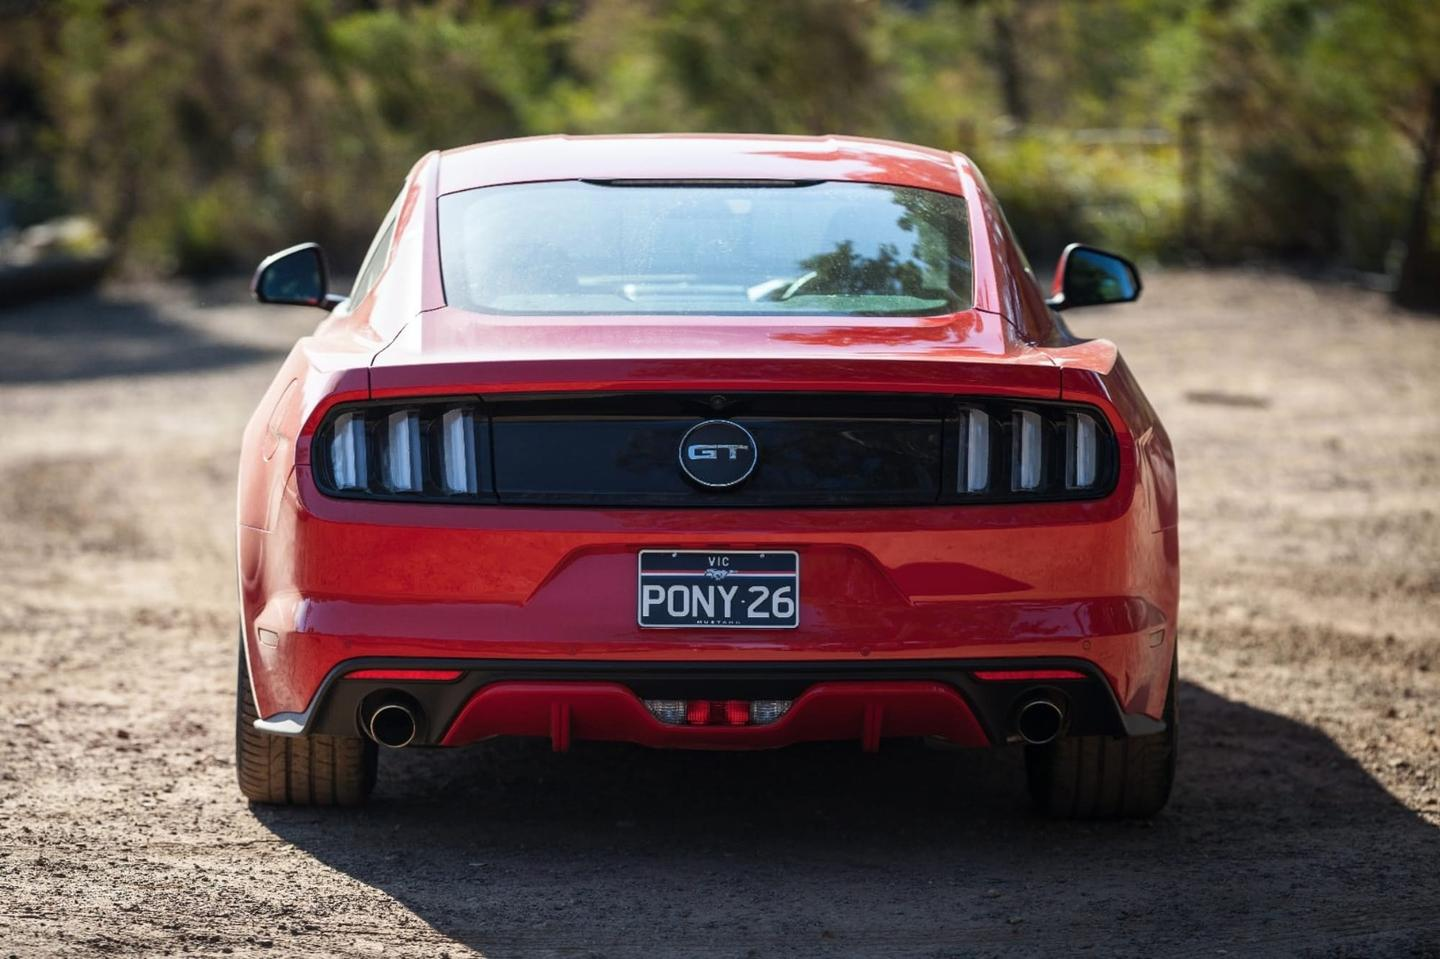 Perfomance Power Packages help the Mustang pony up